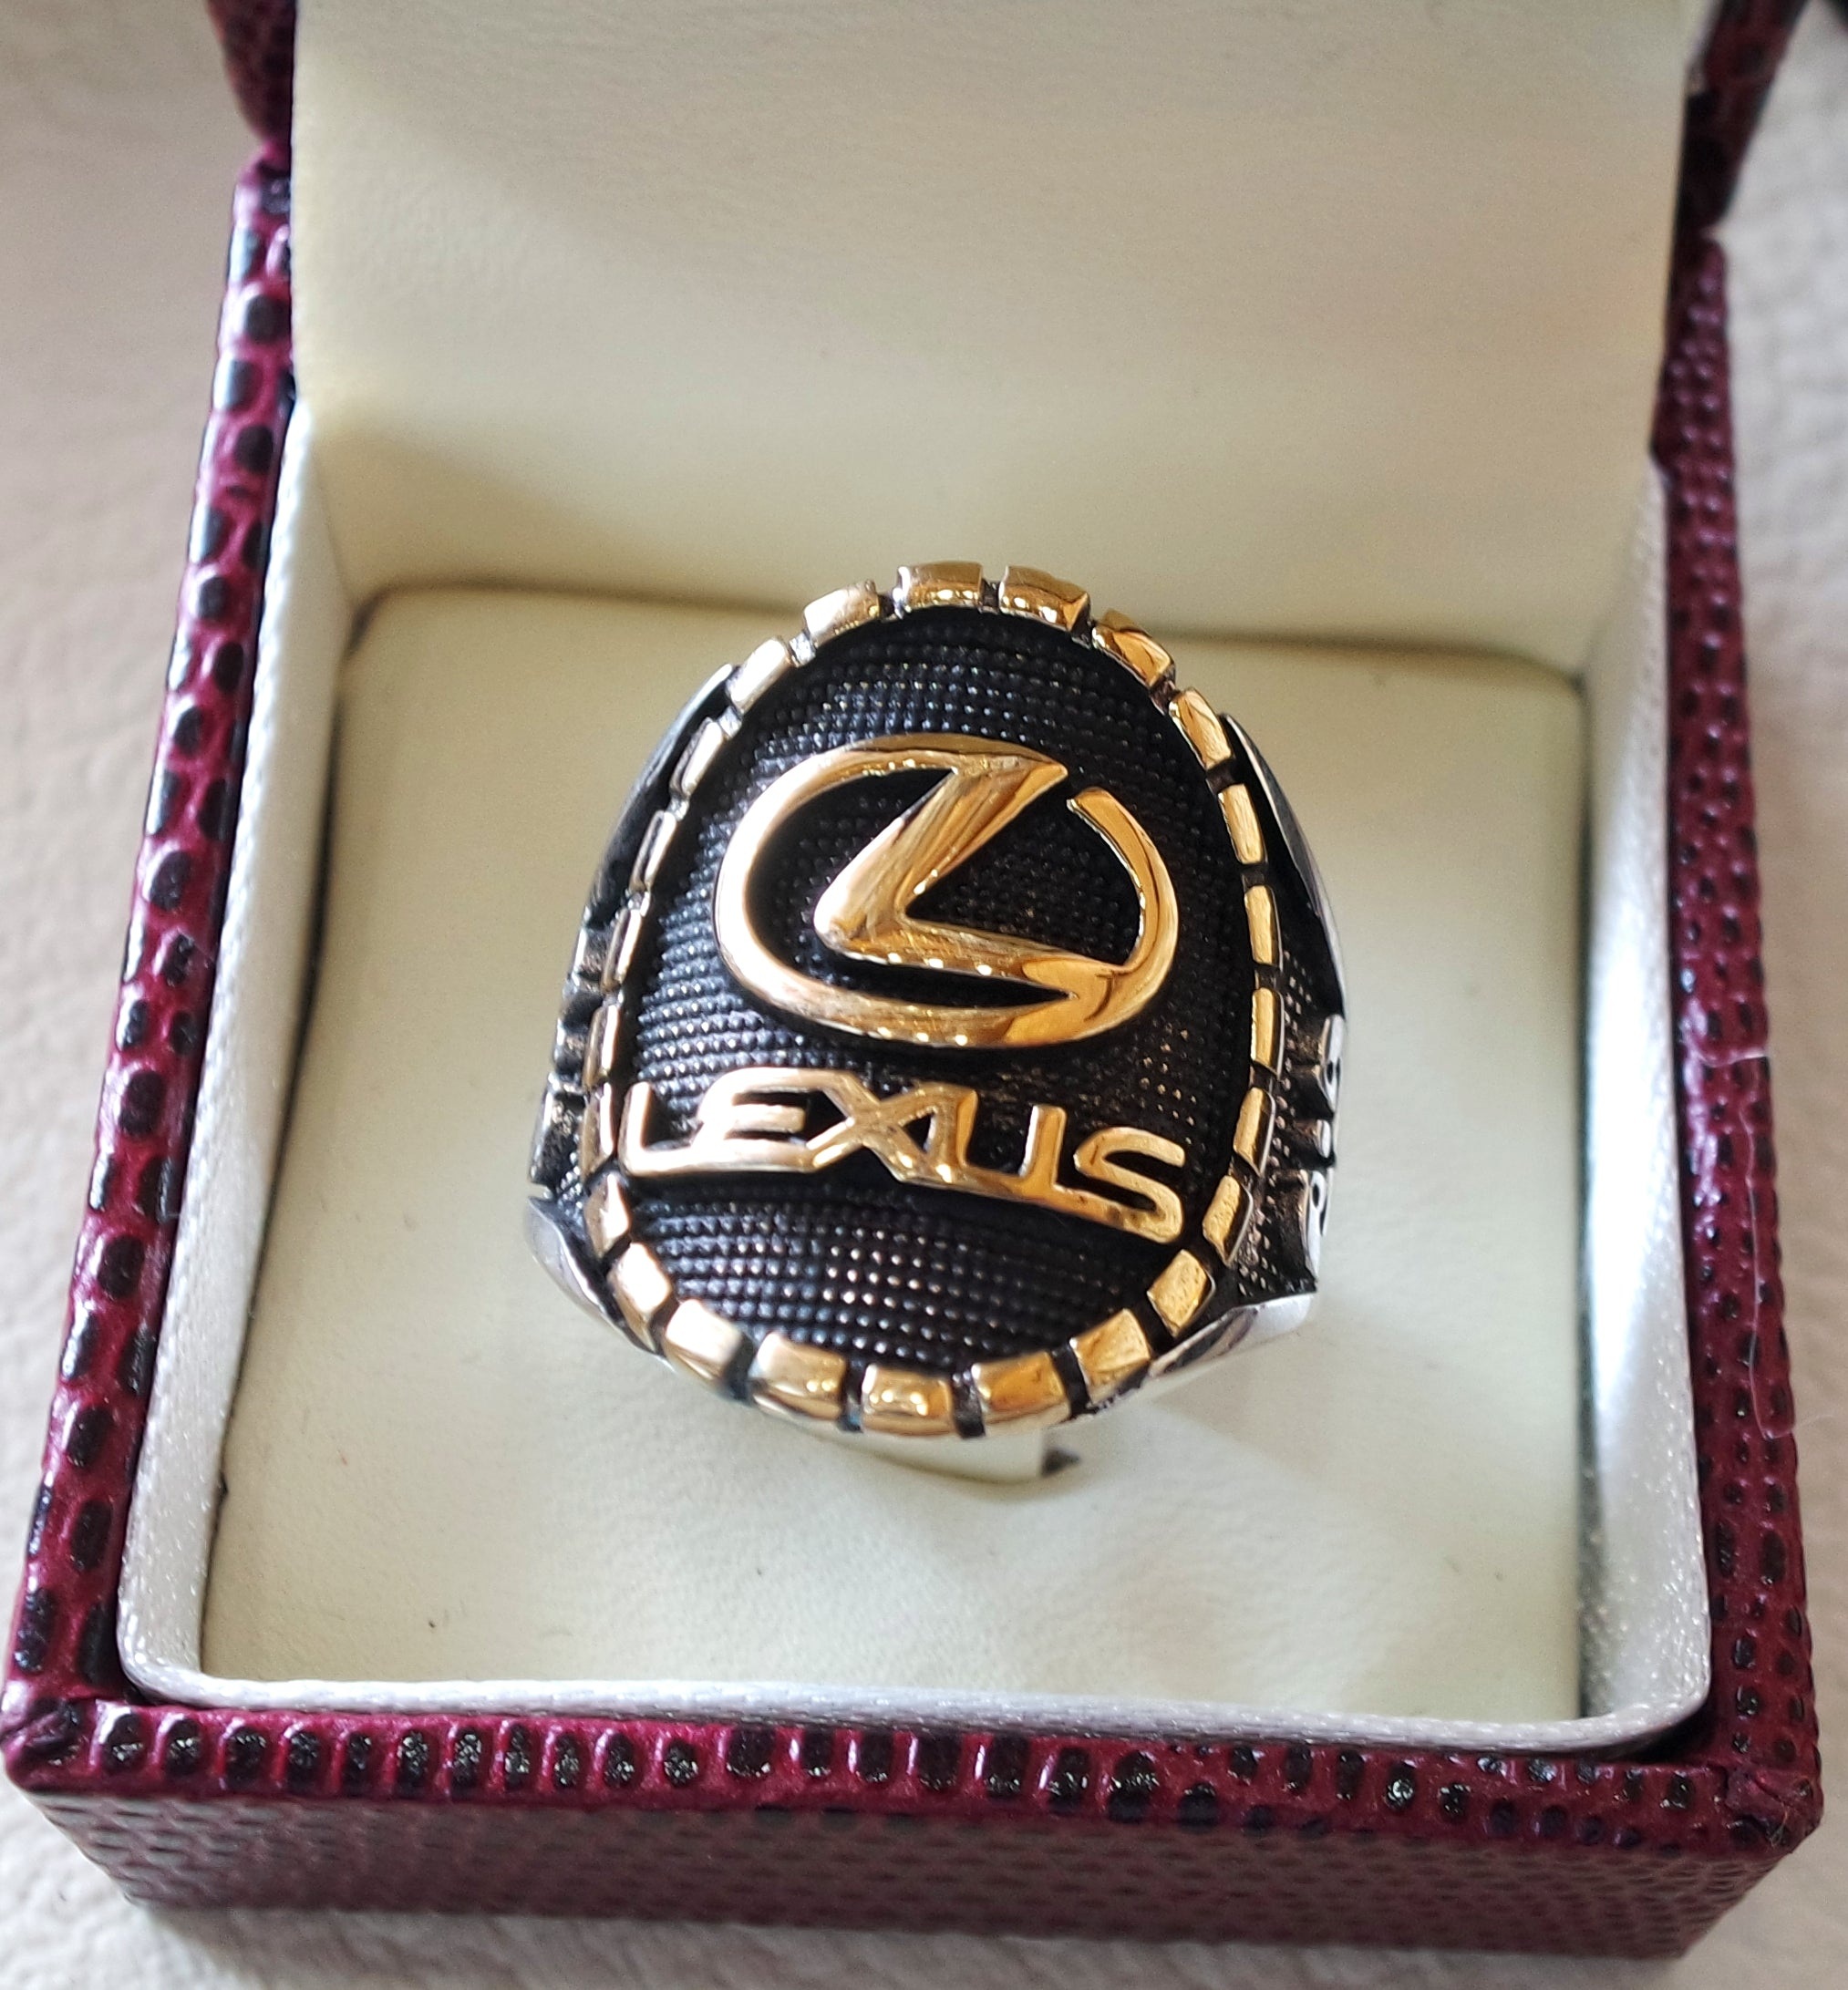 Lexus sterling silver 925 and bronze heavy man ring new car ideal gift all sizes